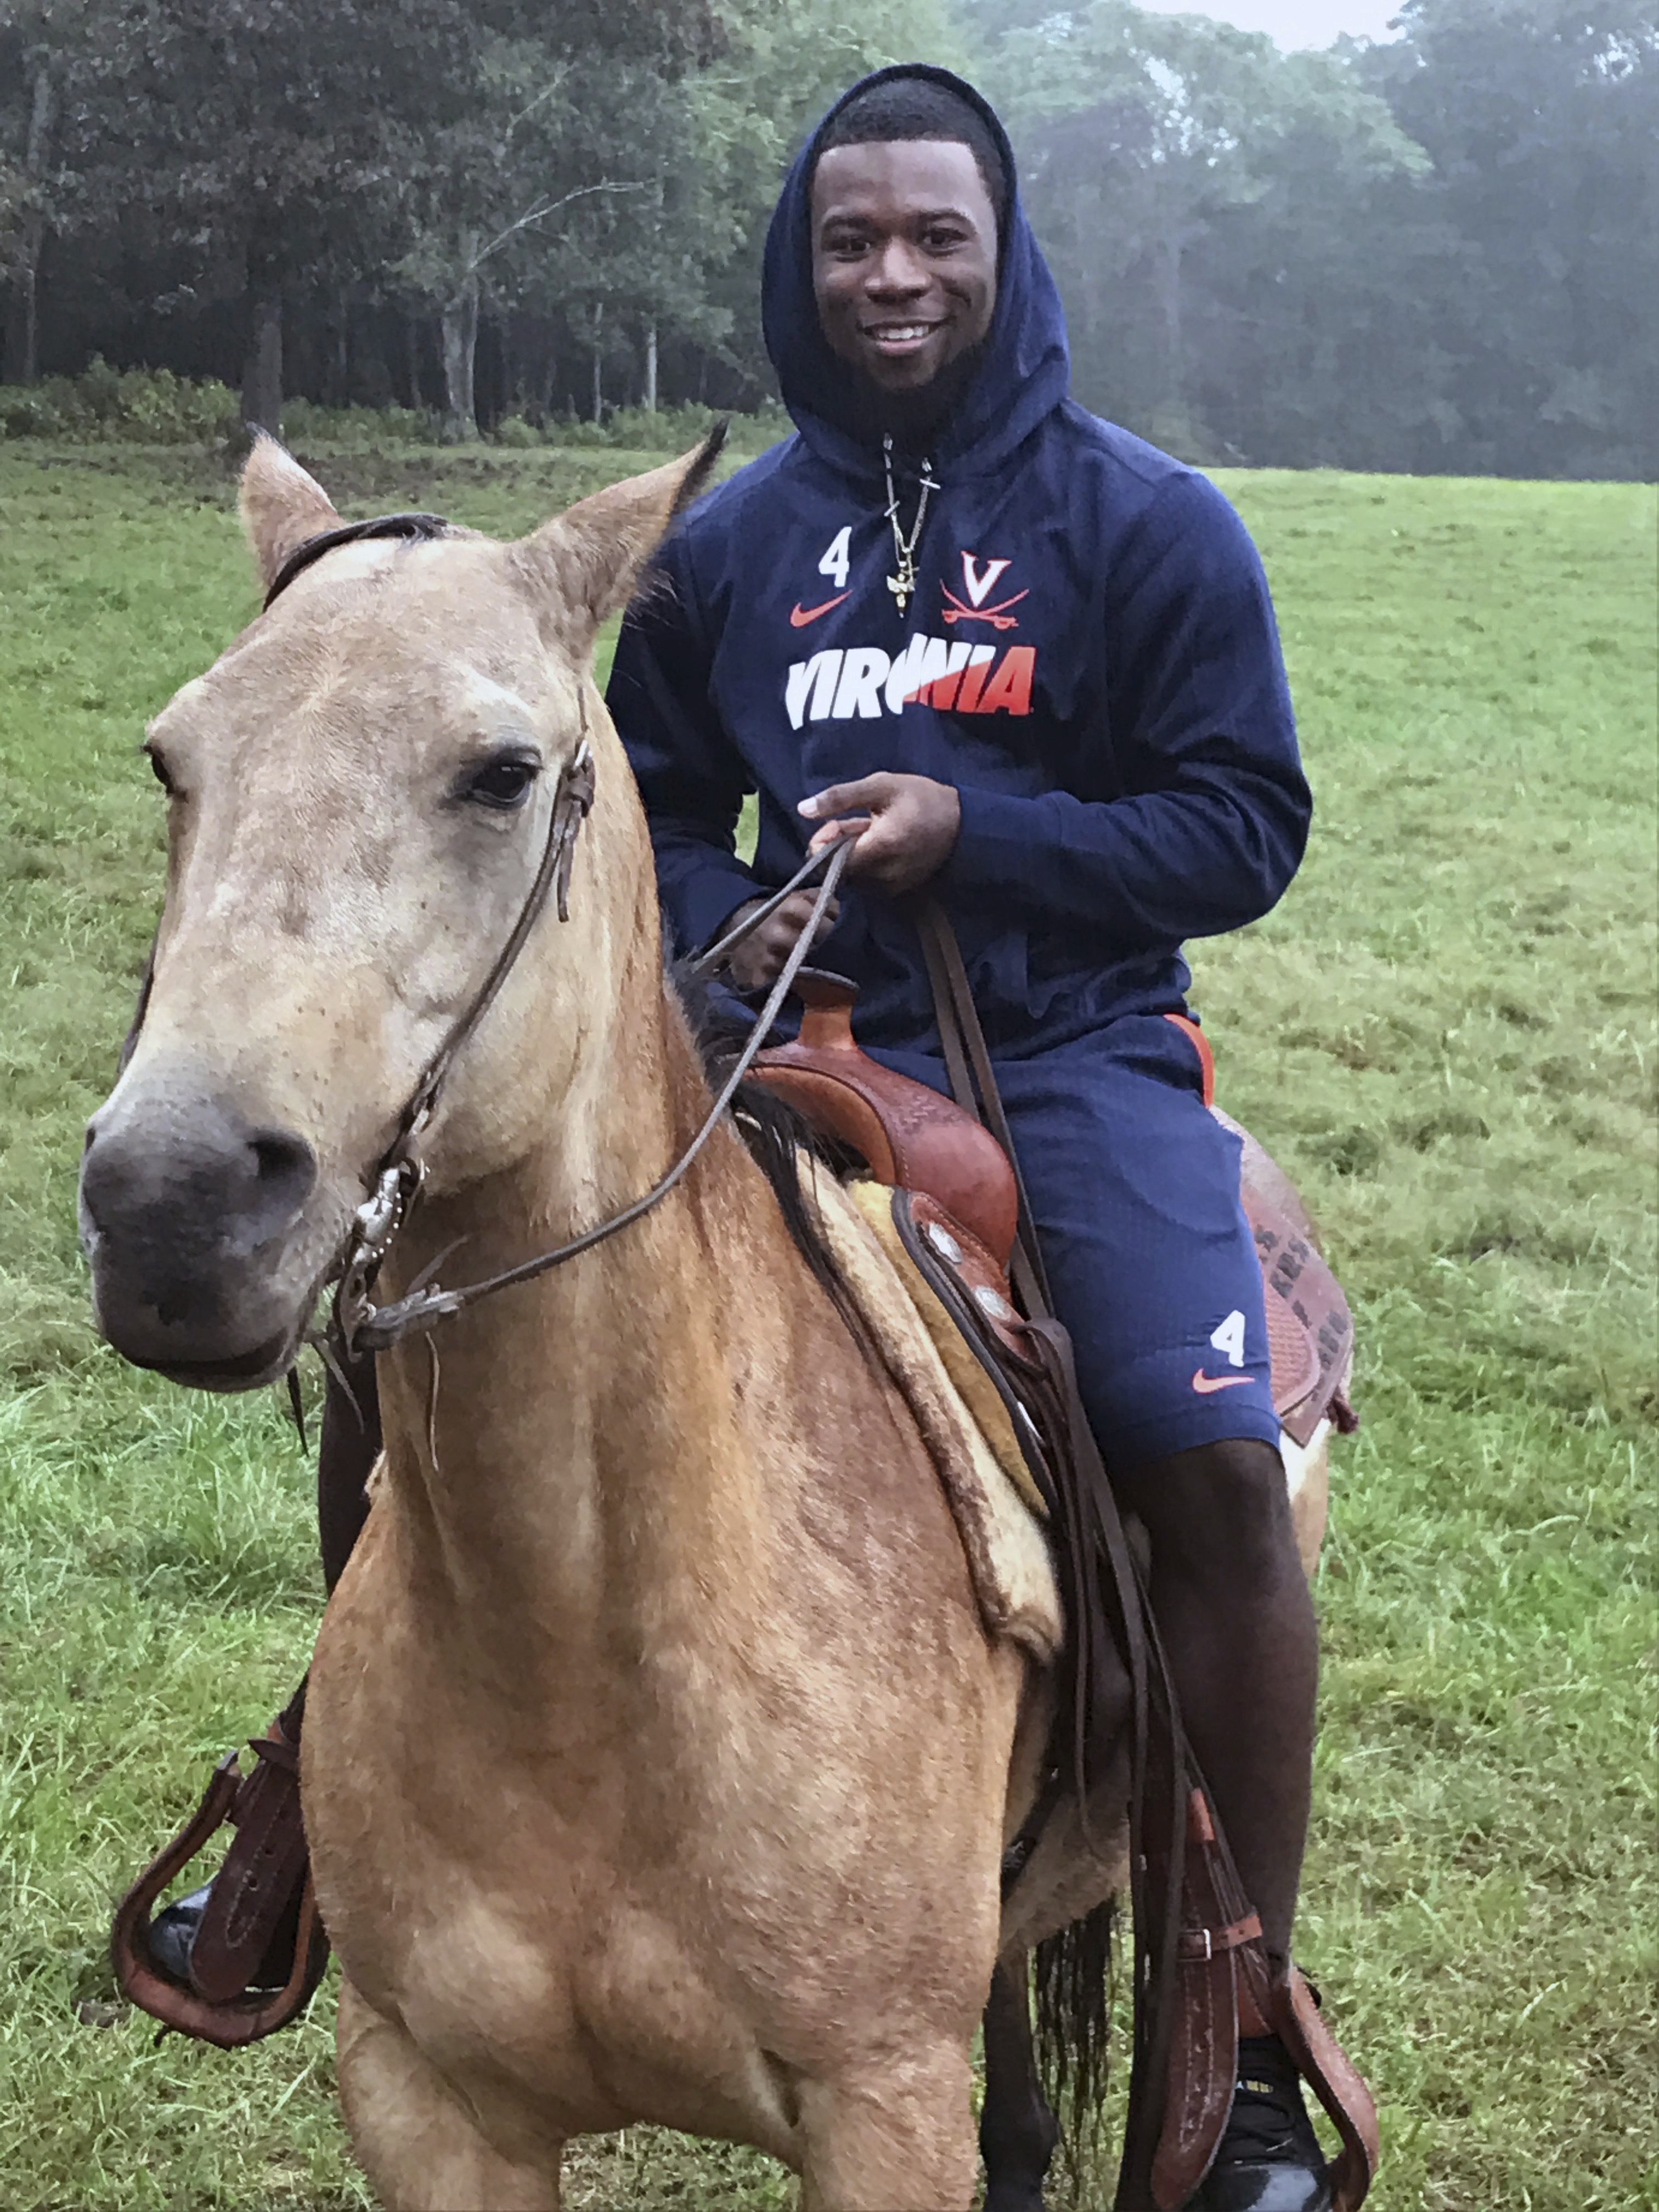 This photo provided by Jack McDonald shows University of Virginia football player Taquan Mizzell riding a horse at Virginia head coach Bronco Mendenhall's ranch in Charlottesville, Va., Saturday, Oct. 8, 2016. Virginia had a bye week with intense practice